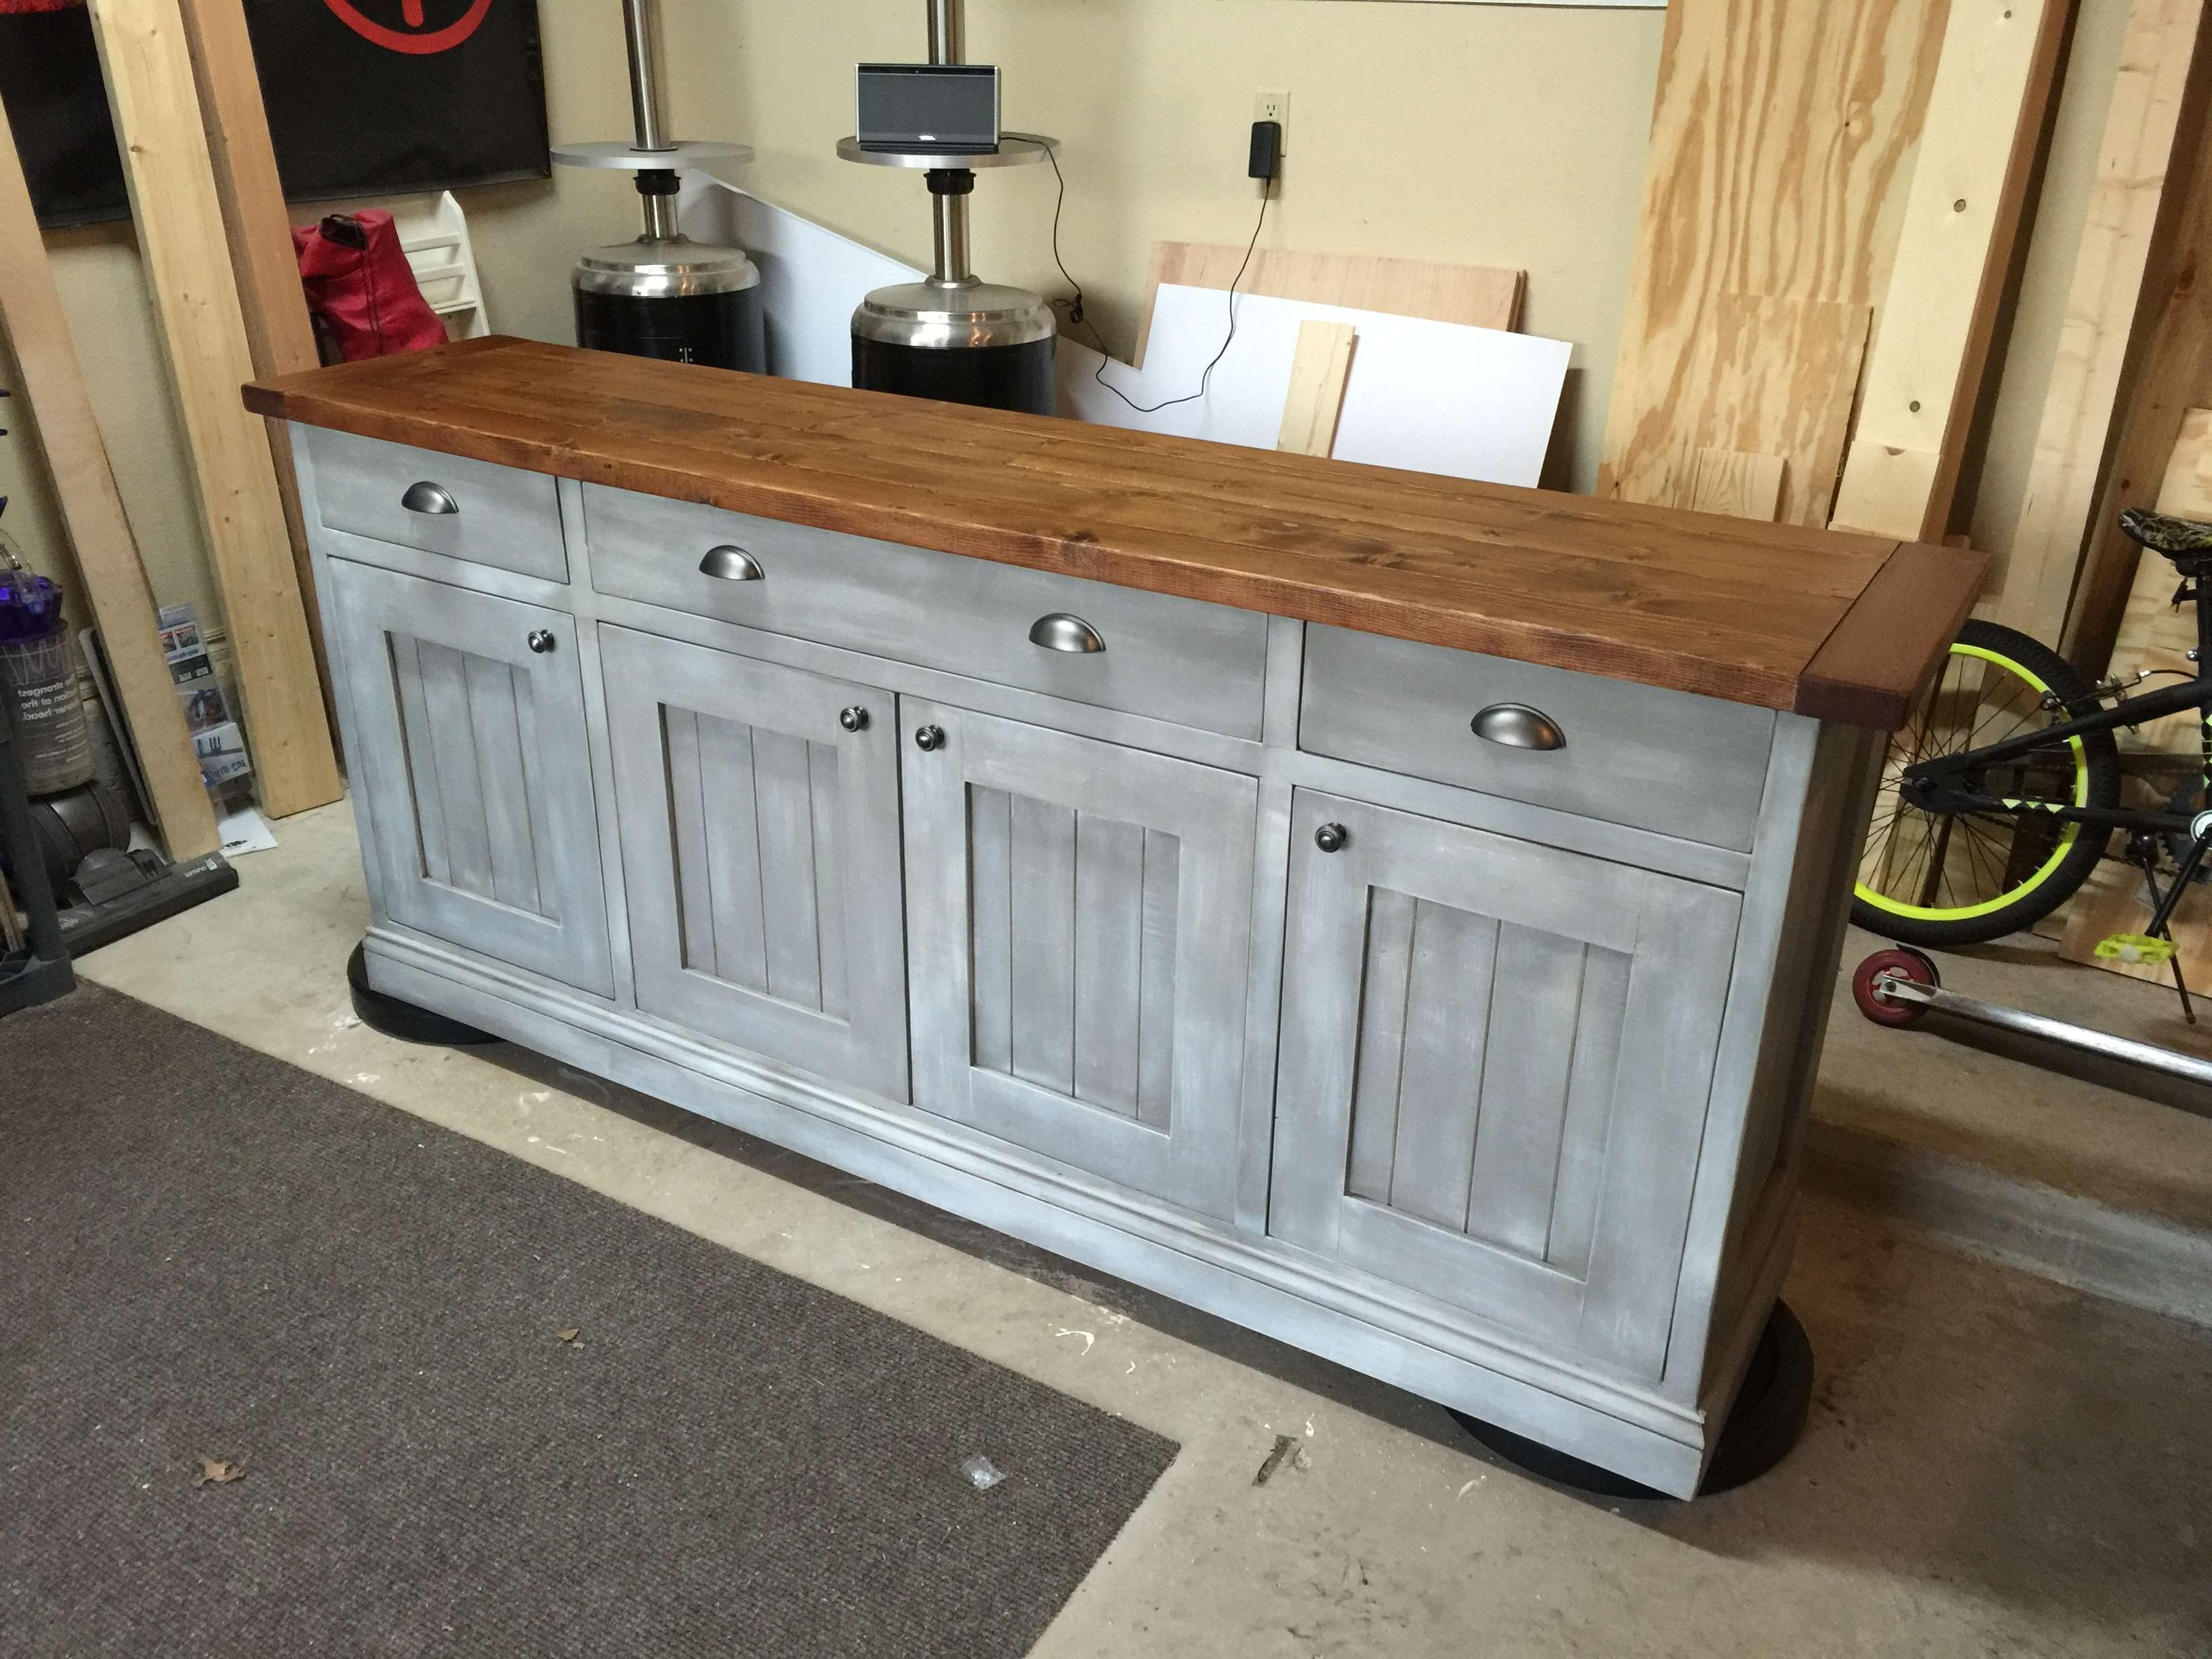 Ana White | Planked Wood Sideboard – Diy Projects With Regard To Diy Sideboards (Gallery 6 of 20)